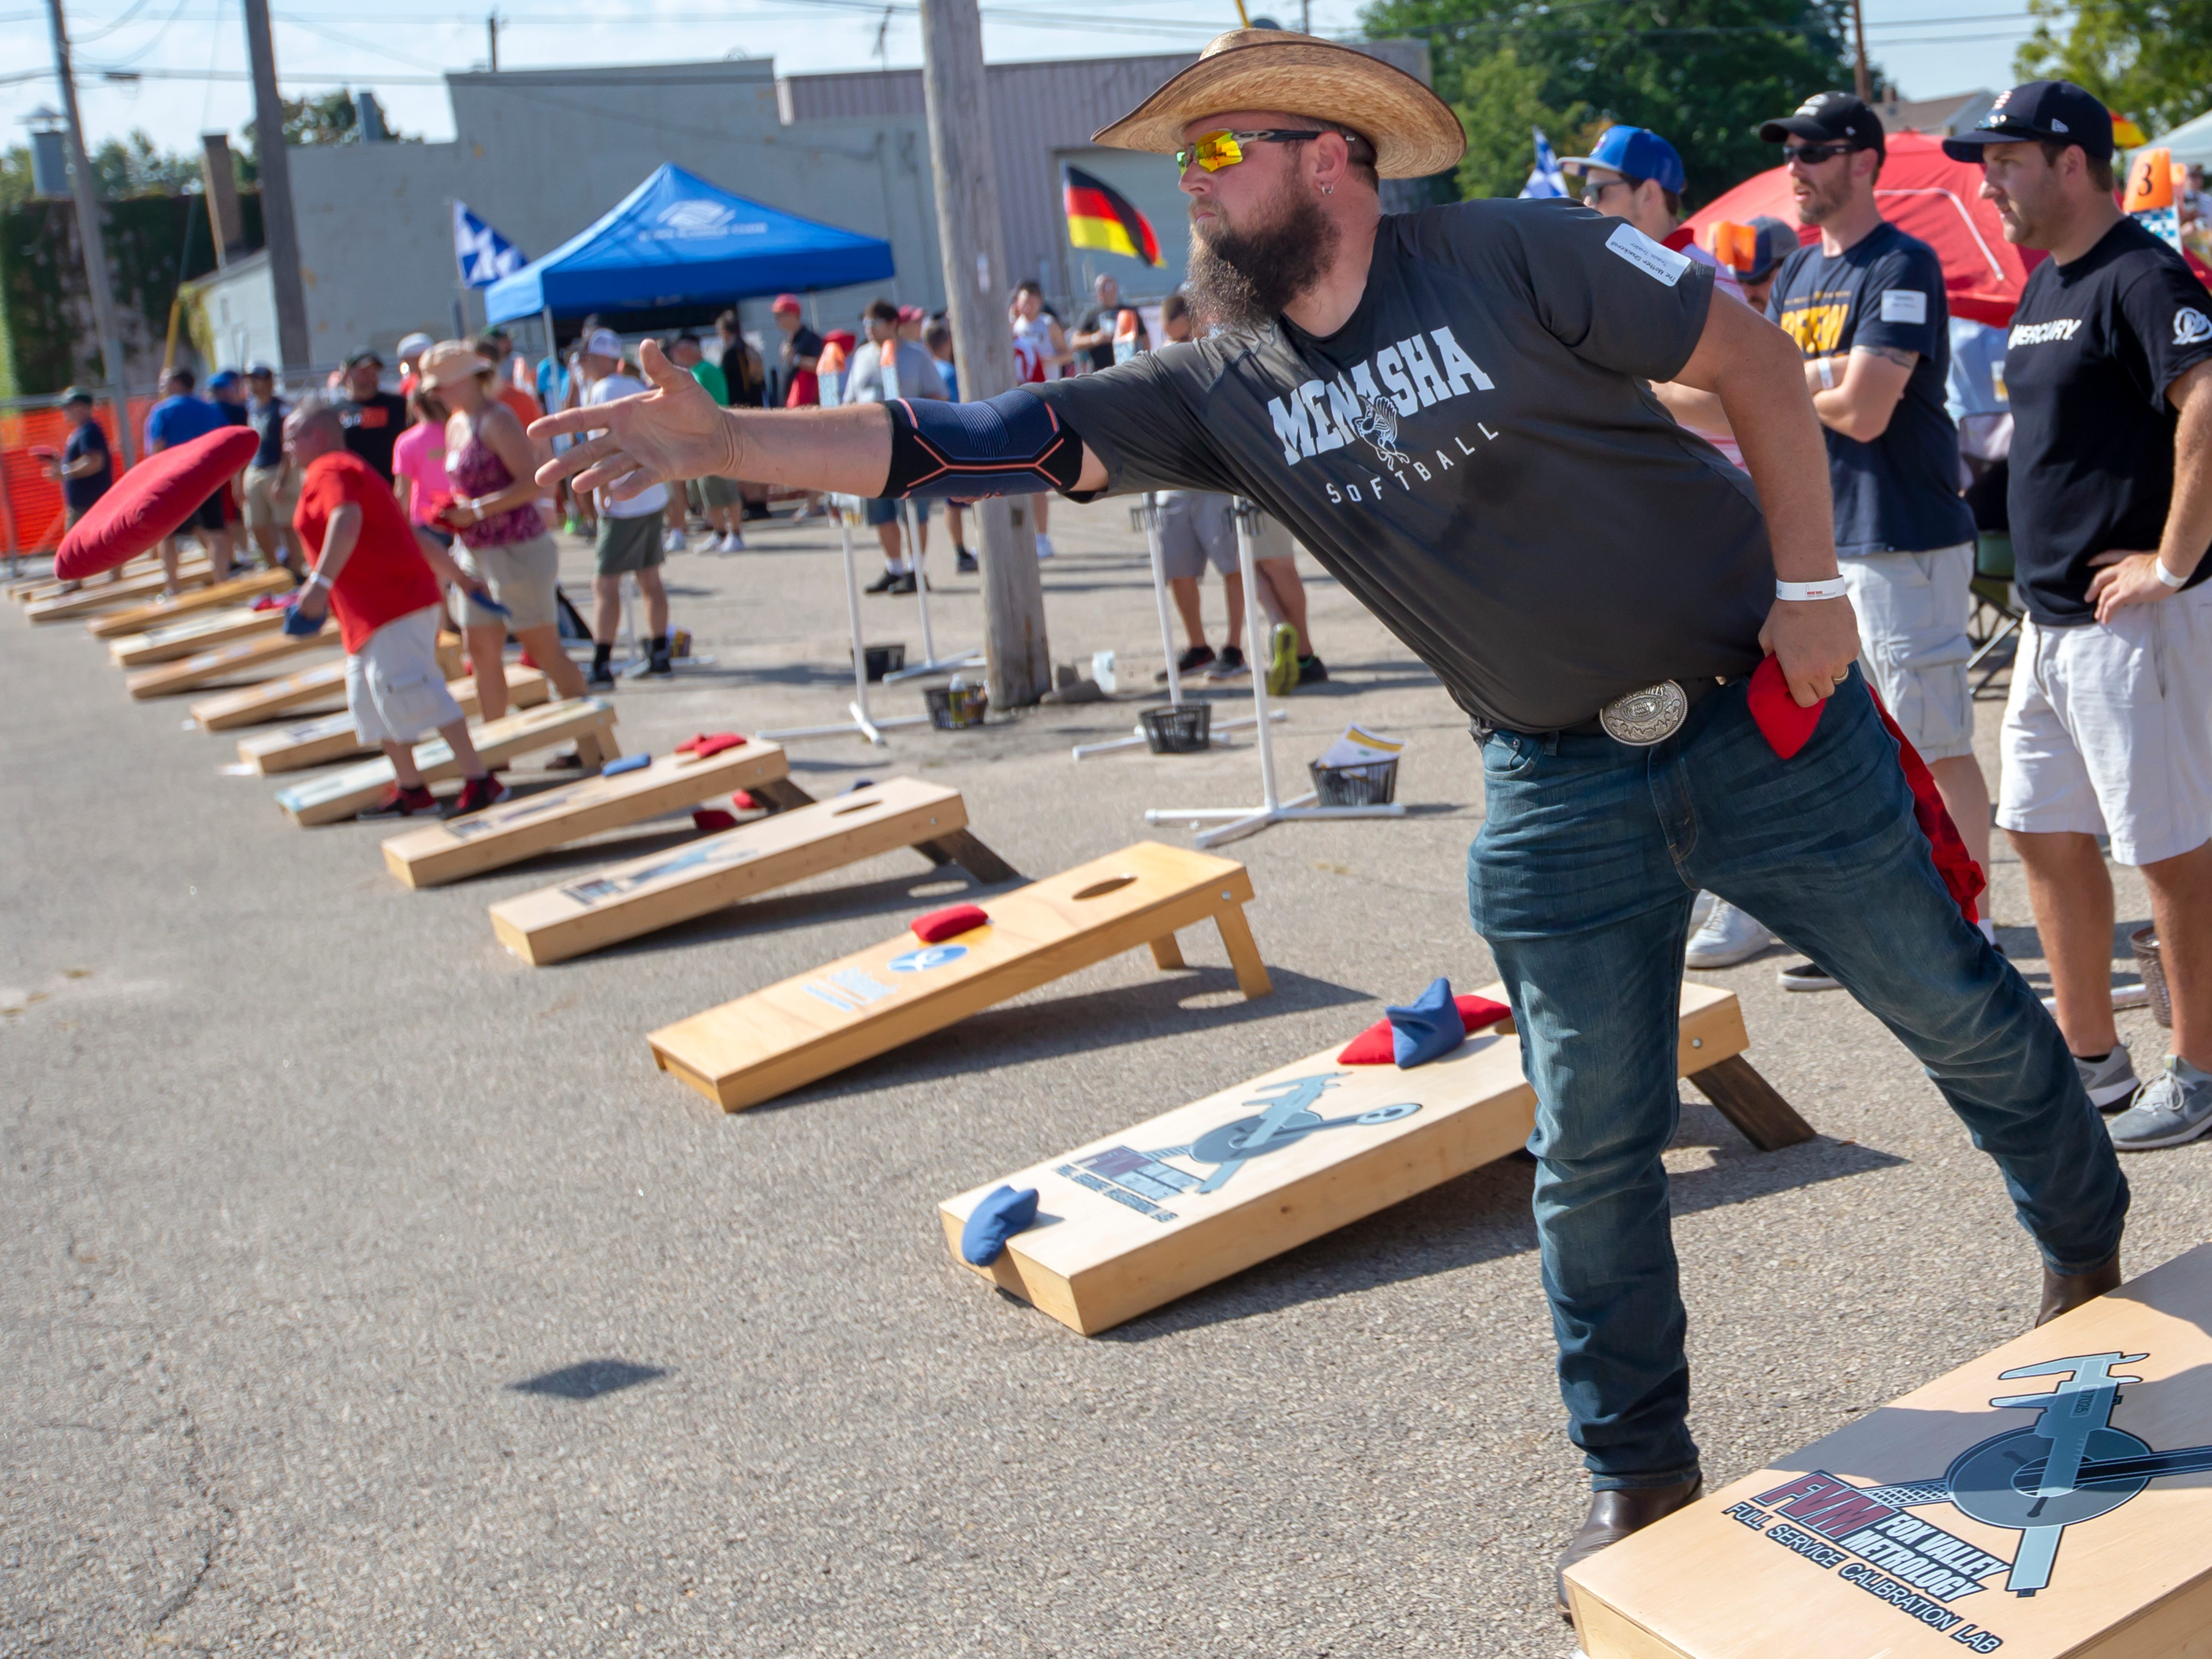 Travis Trader throws a red bean bag competing in the Wisconsin Cornhole Tourney at Dockside Tavern in Oshkosh on Saturday, Sept. 15, 2018.